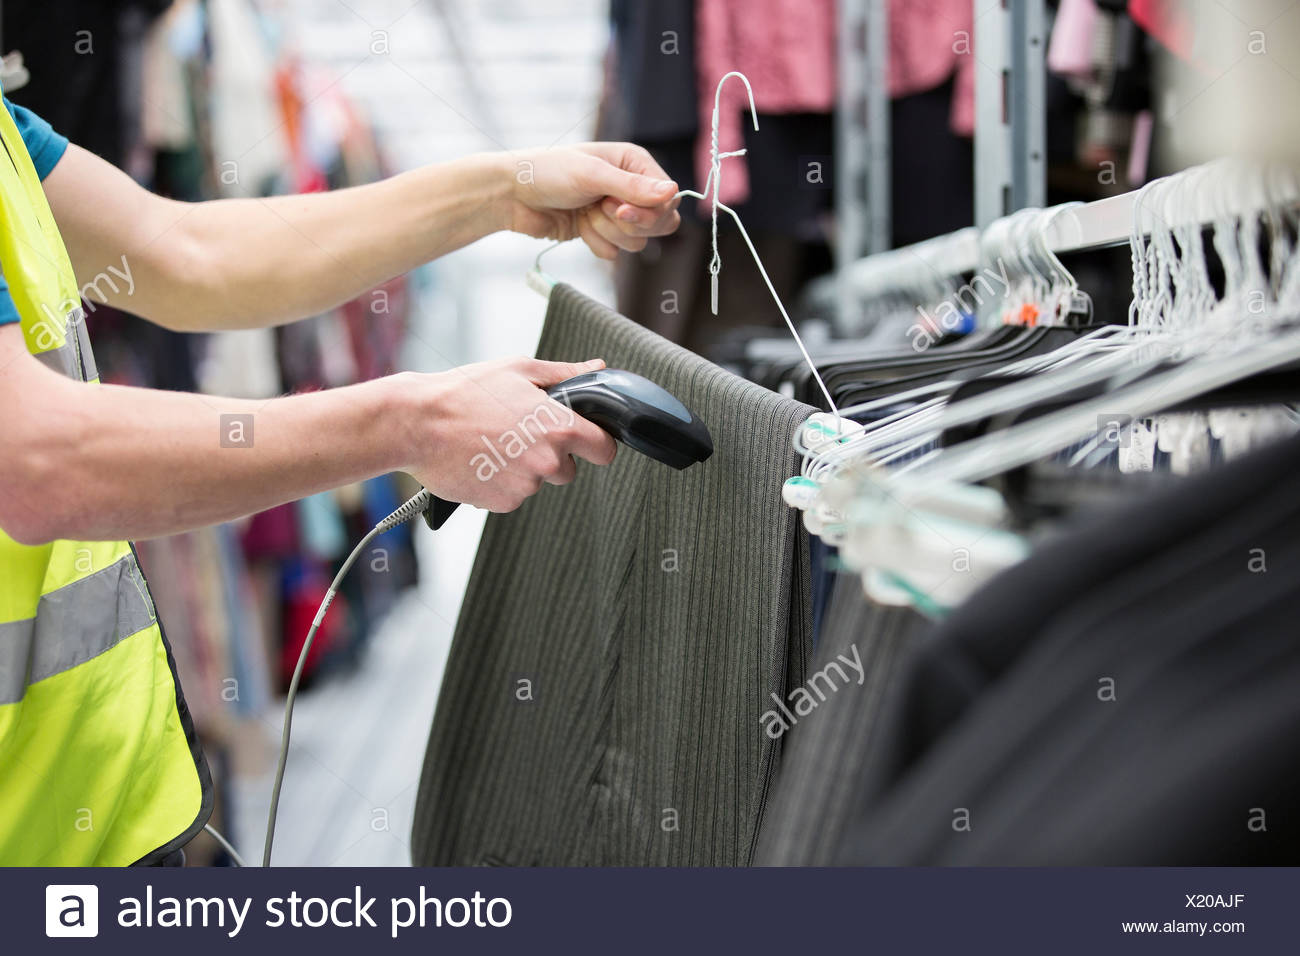 Man checking pair of trousers in warehouse - Stock Image